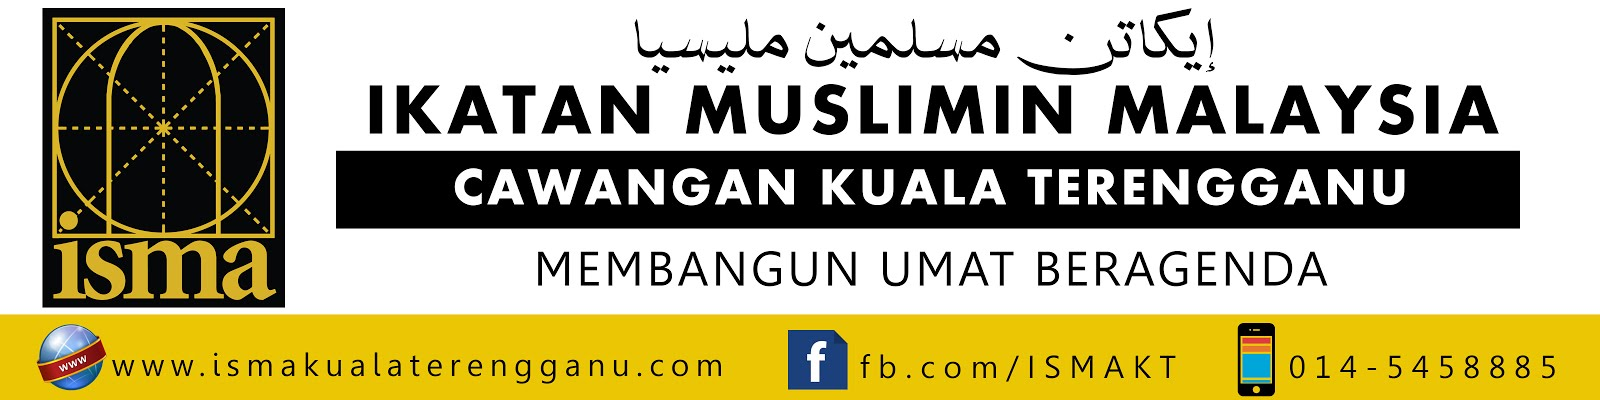 Ikatan Muslimin Malaysia (Isma) Kuala Terengganu